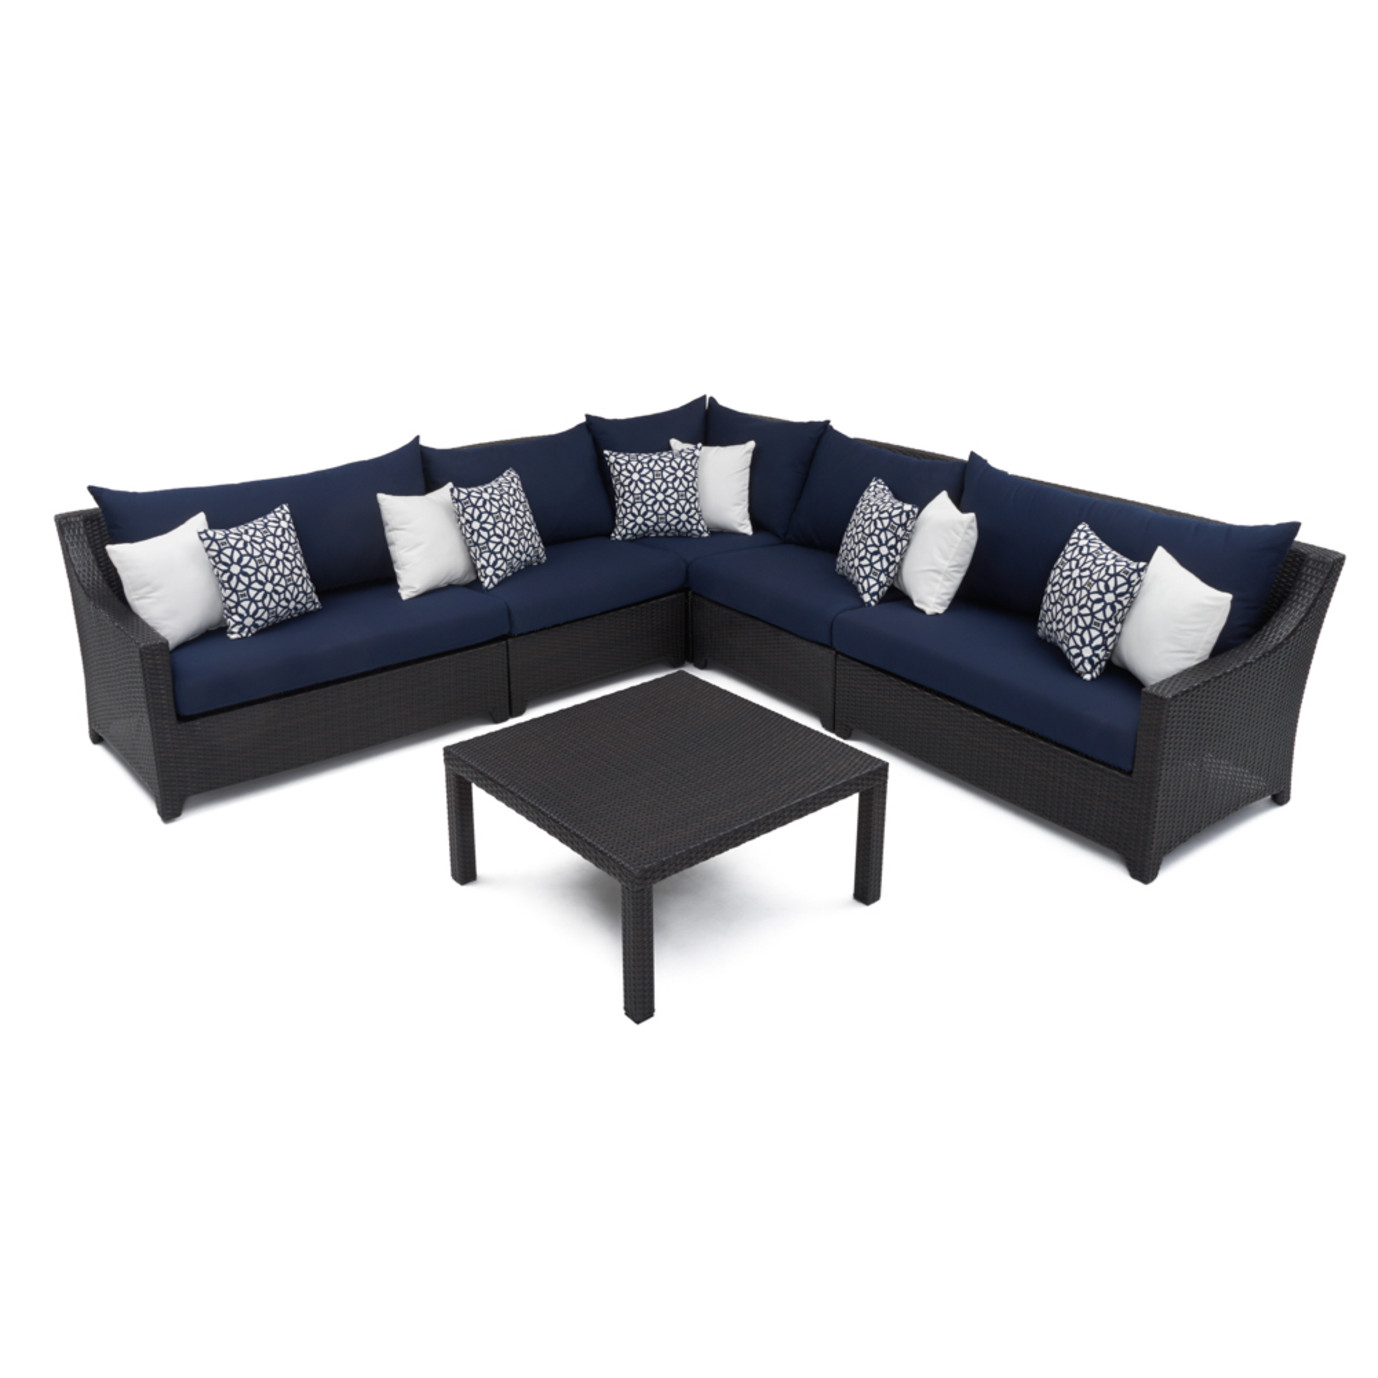 Deco™ 6 Piece Sectional and Table